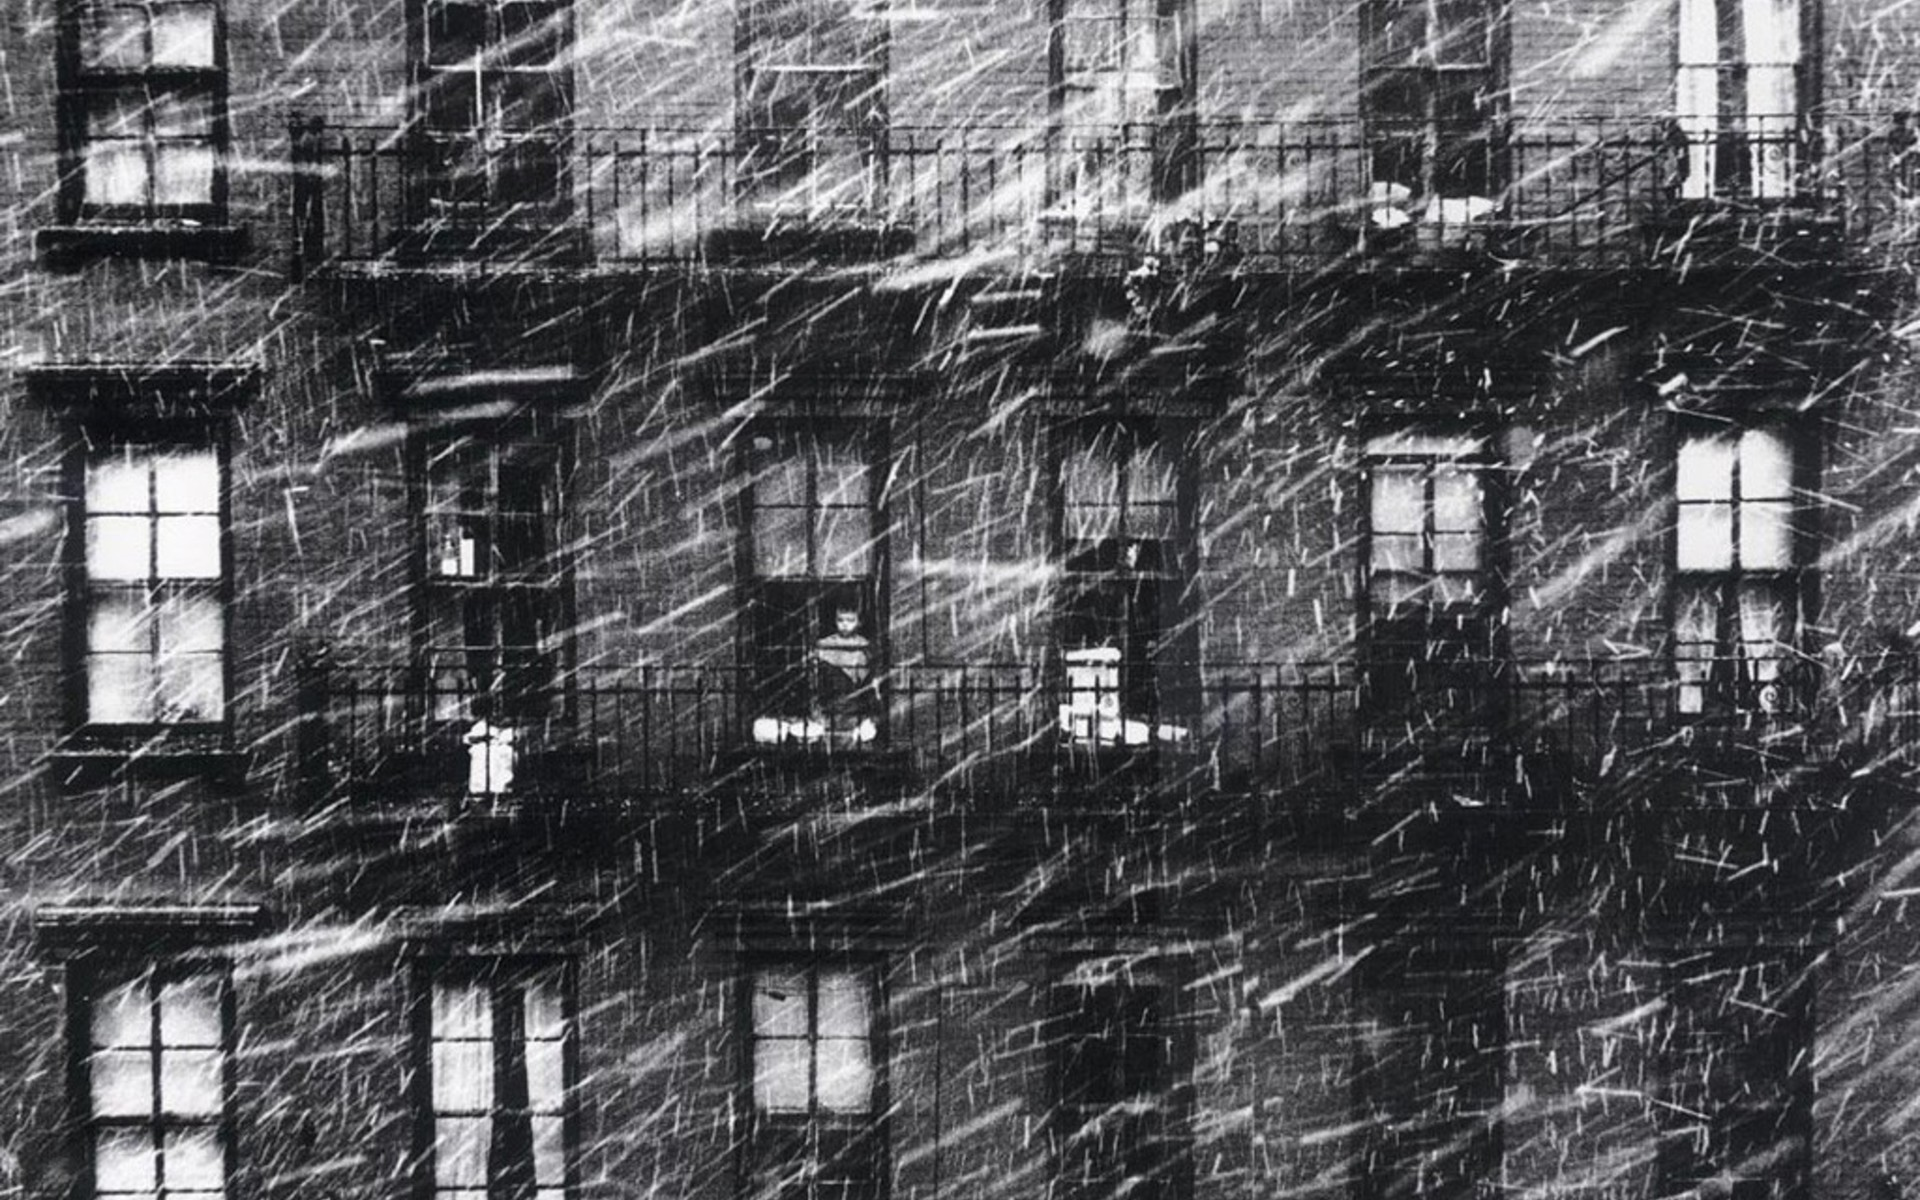 Falling Snow Wallpaper Iphone Snow Houses Grayscale Old Photography Windows Paul Himmel